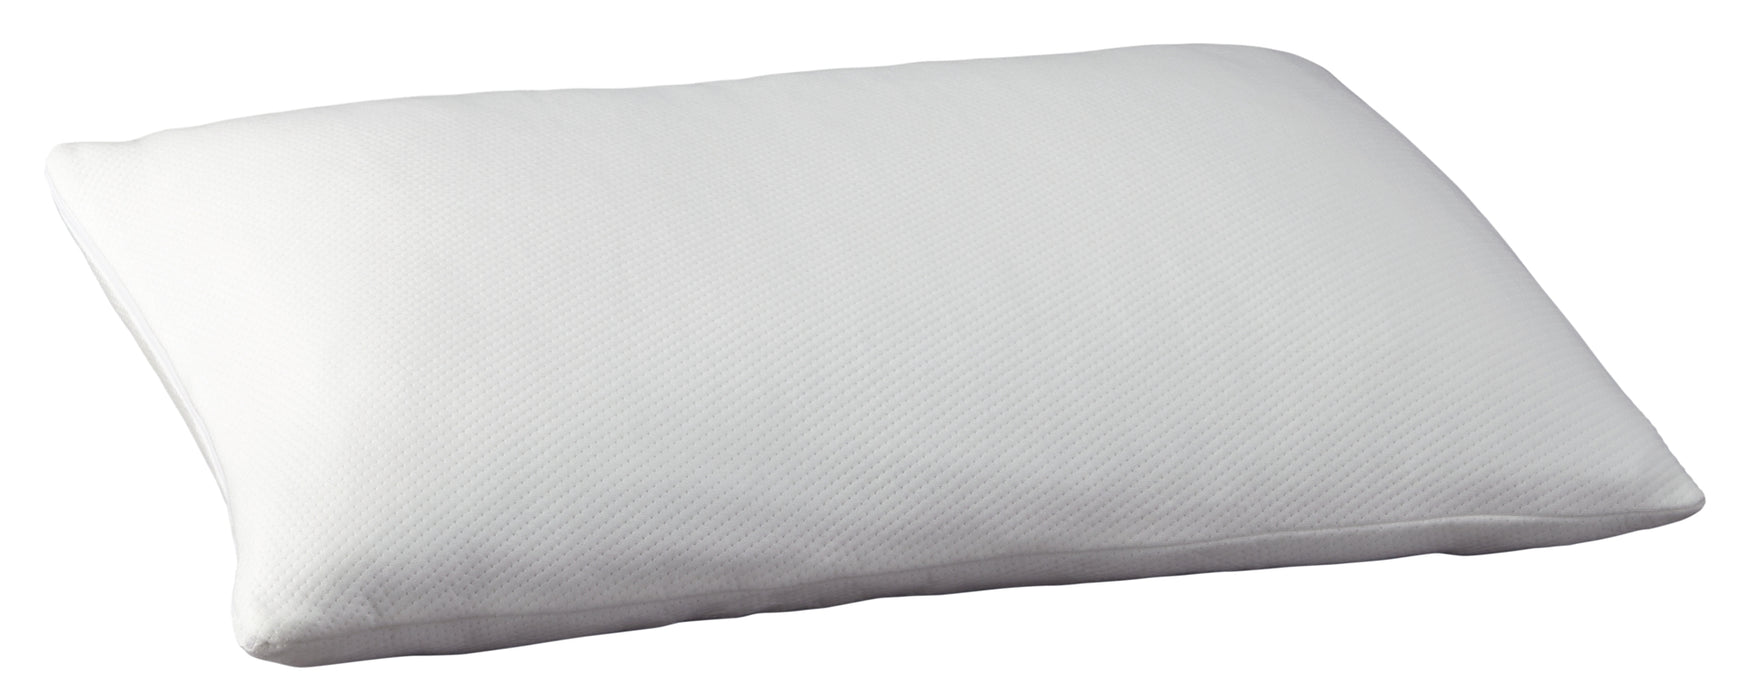 Promotional Bed Pillow Set of 10